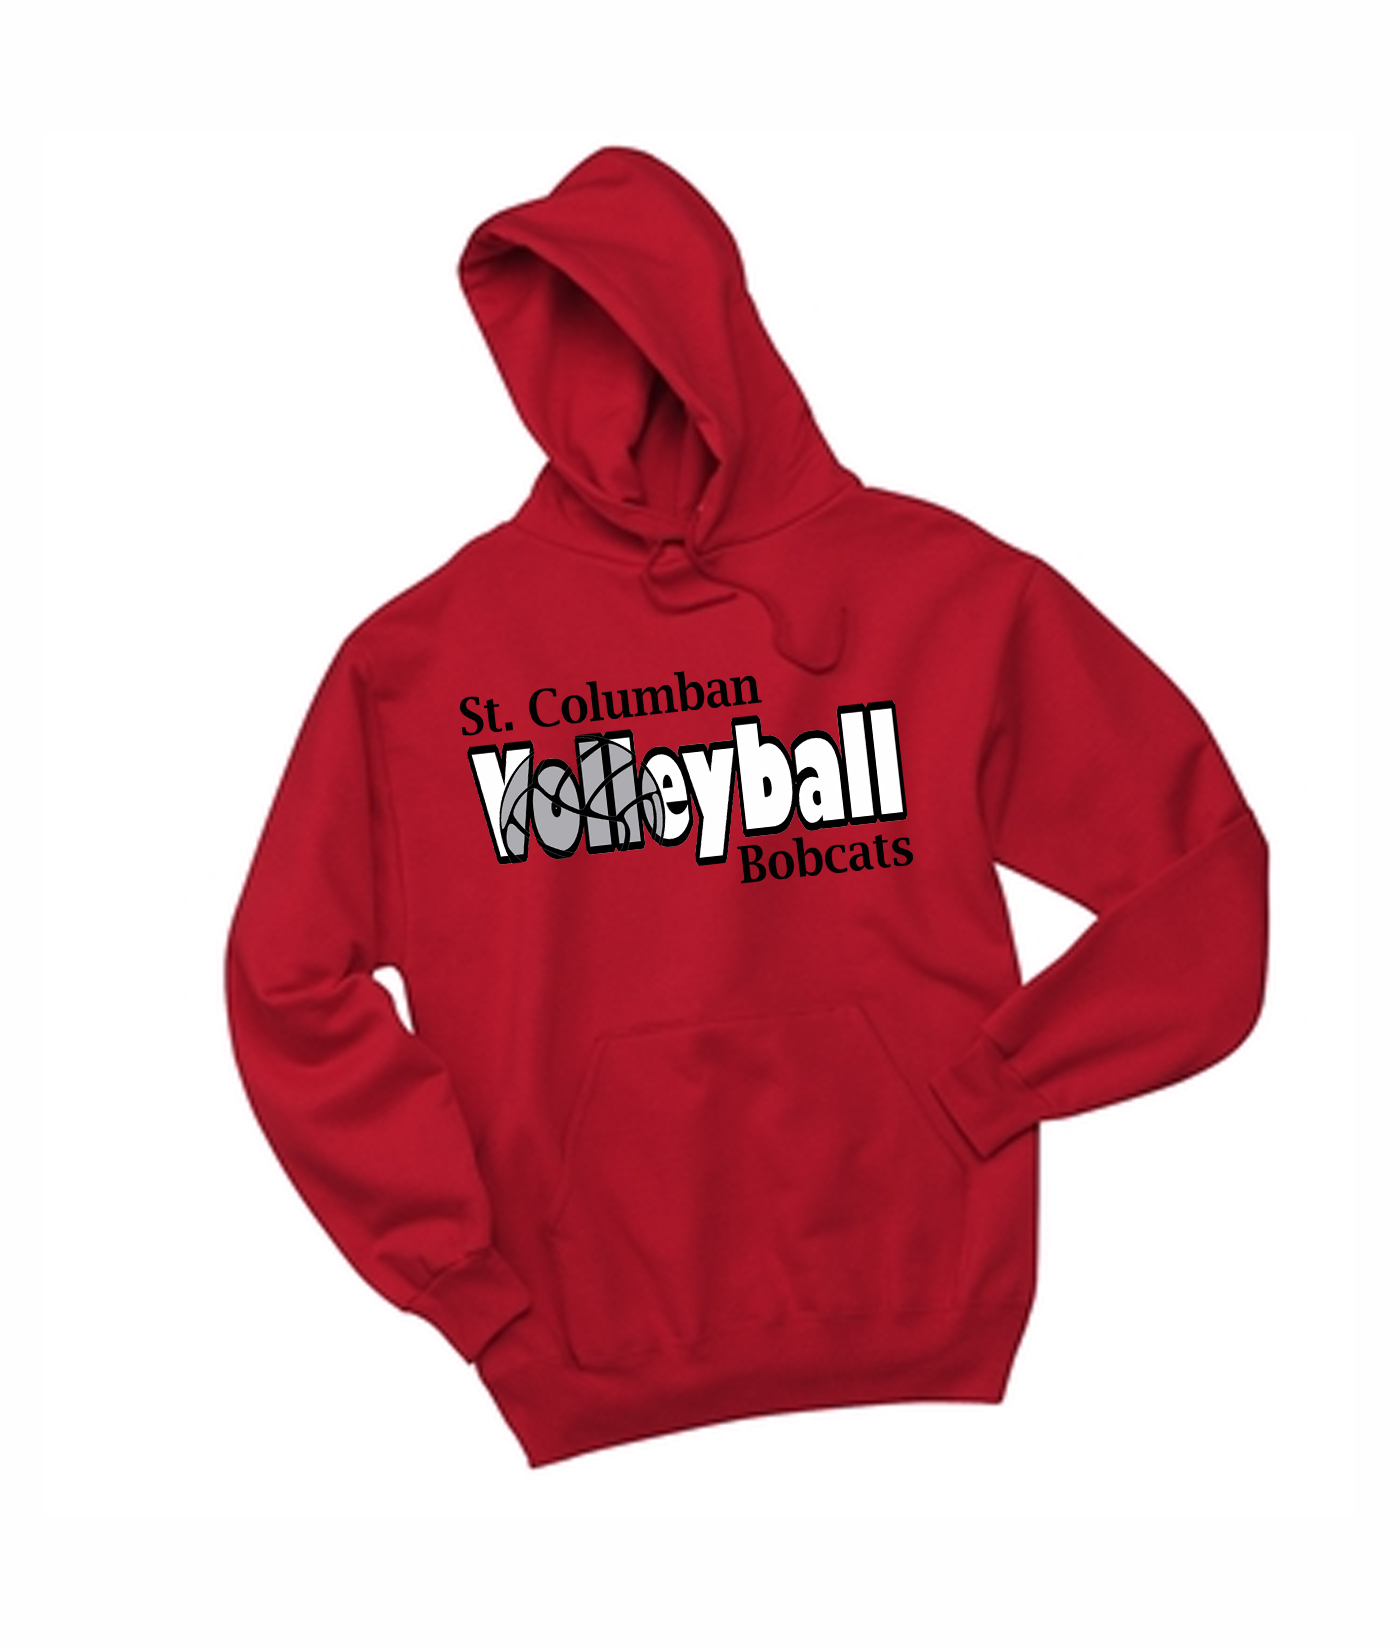 St. Columban Bobcats Volleyball Inside Red Hoodie